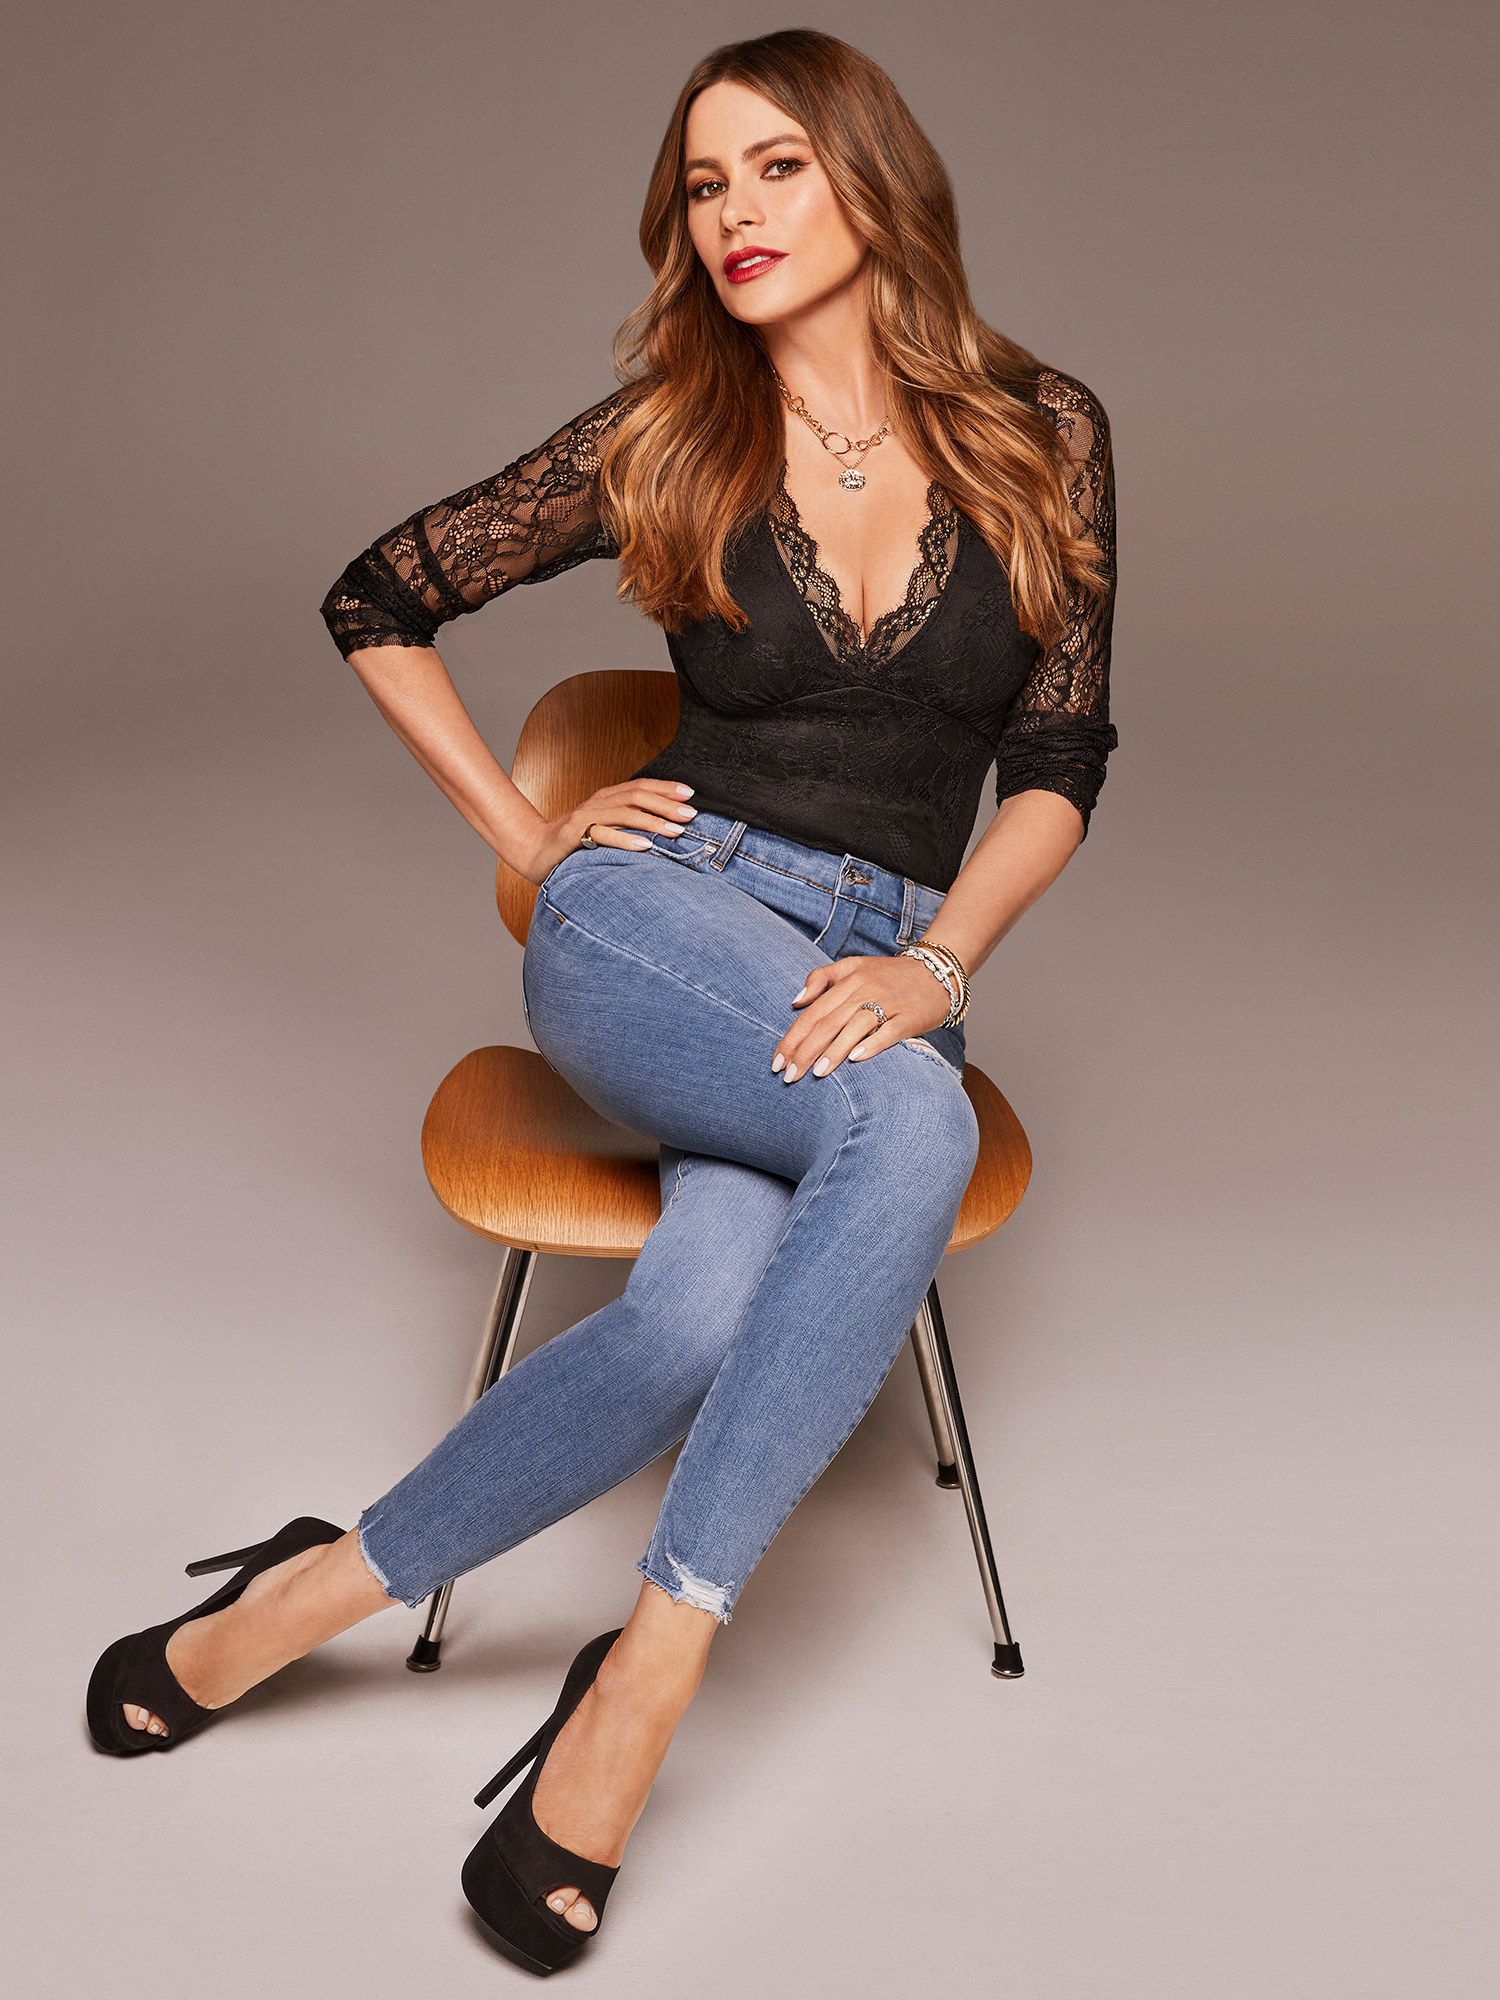 Sofia Vergara wearing lace bodysuit with jeans